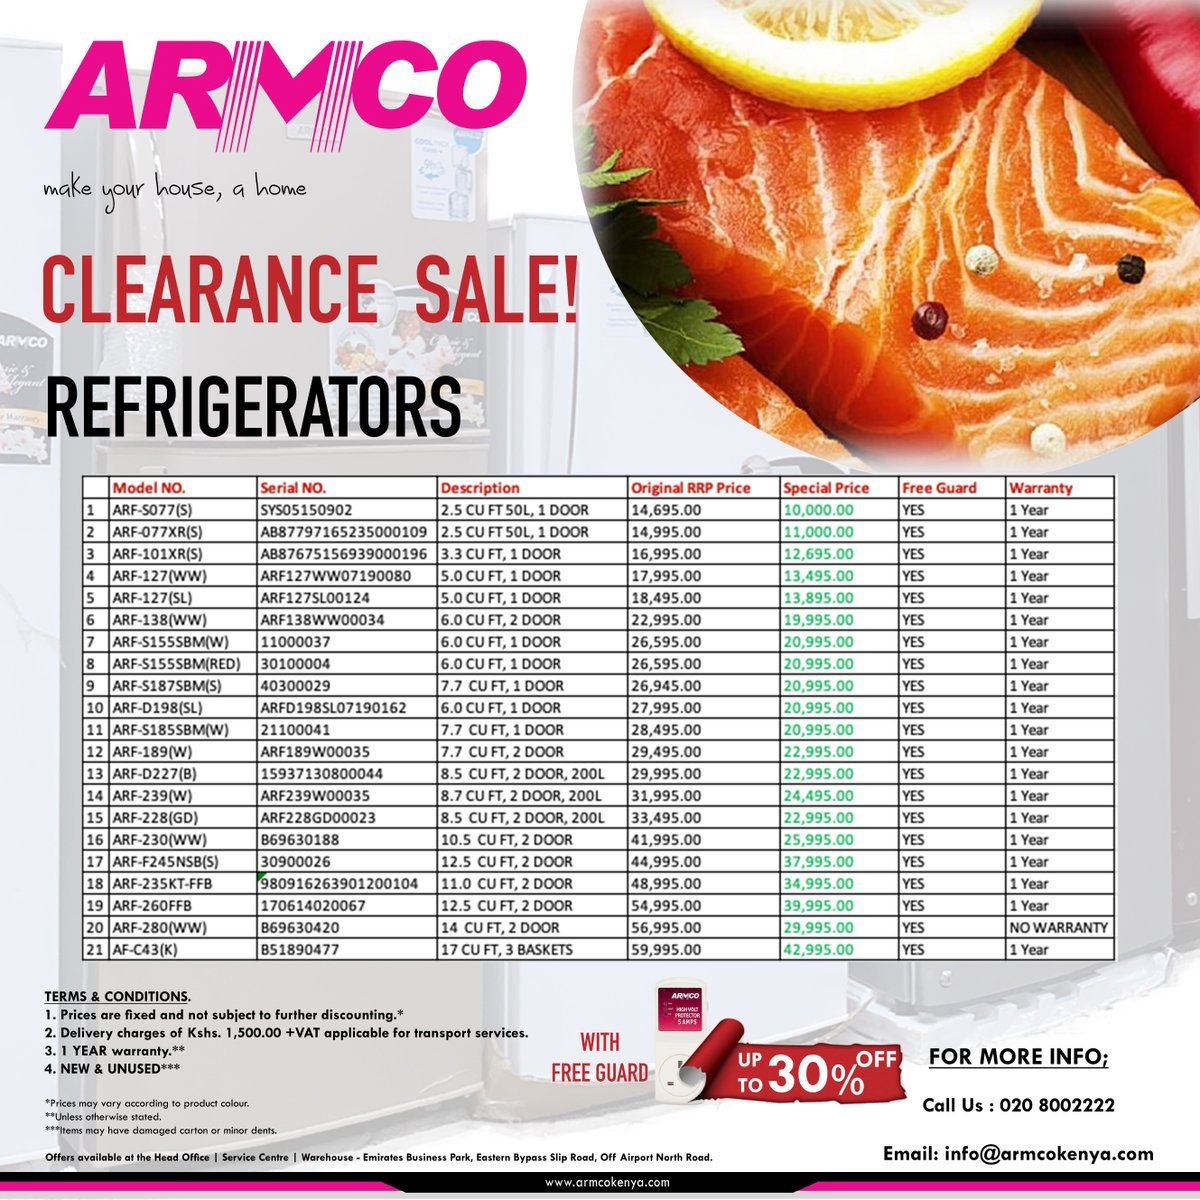 Armco Kenya Limited On Twitter The Armco Refrigerators Clearance Sale Is Here Enjoy Up To 30 Off On Selected Products Visit Https T Co Vzicfrtdqp To View Our Full Range Of Electronic Products In Kenya